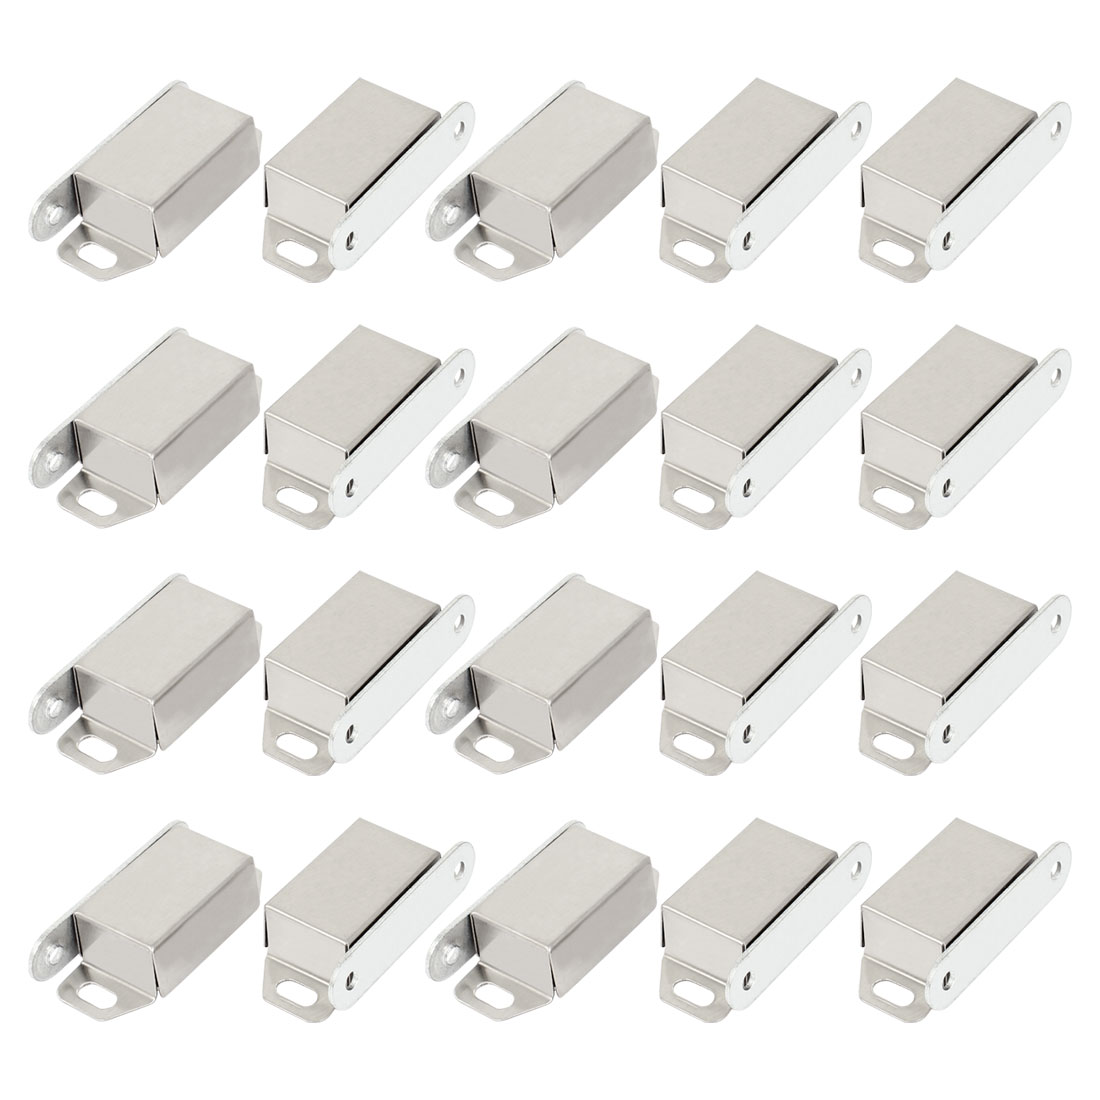 20pcs Metal Cupboard Door Single Magnetic Catch Fastener Latch 48mm Long